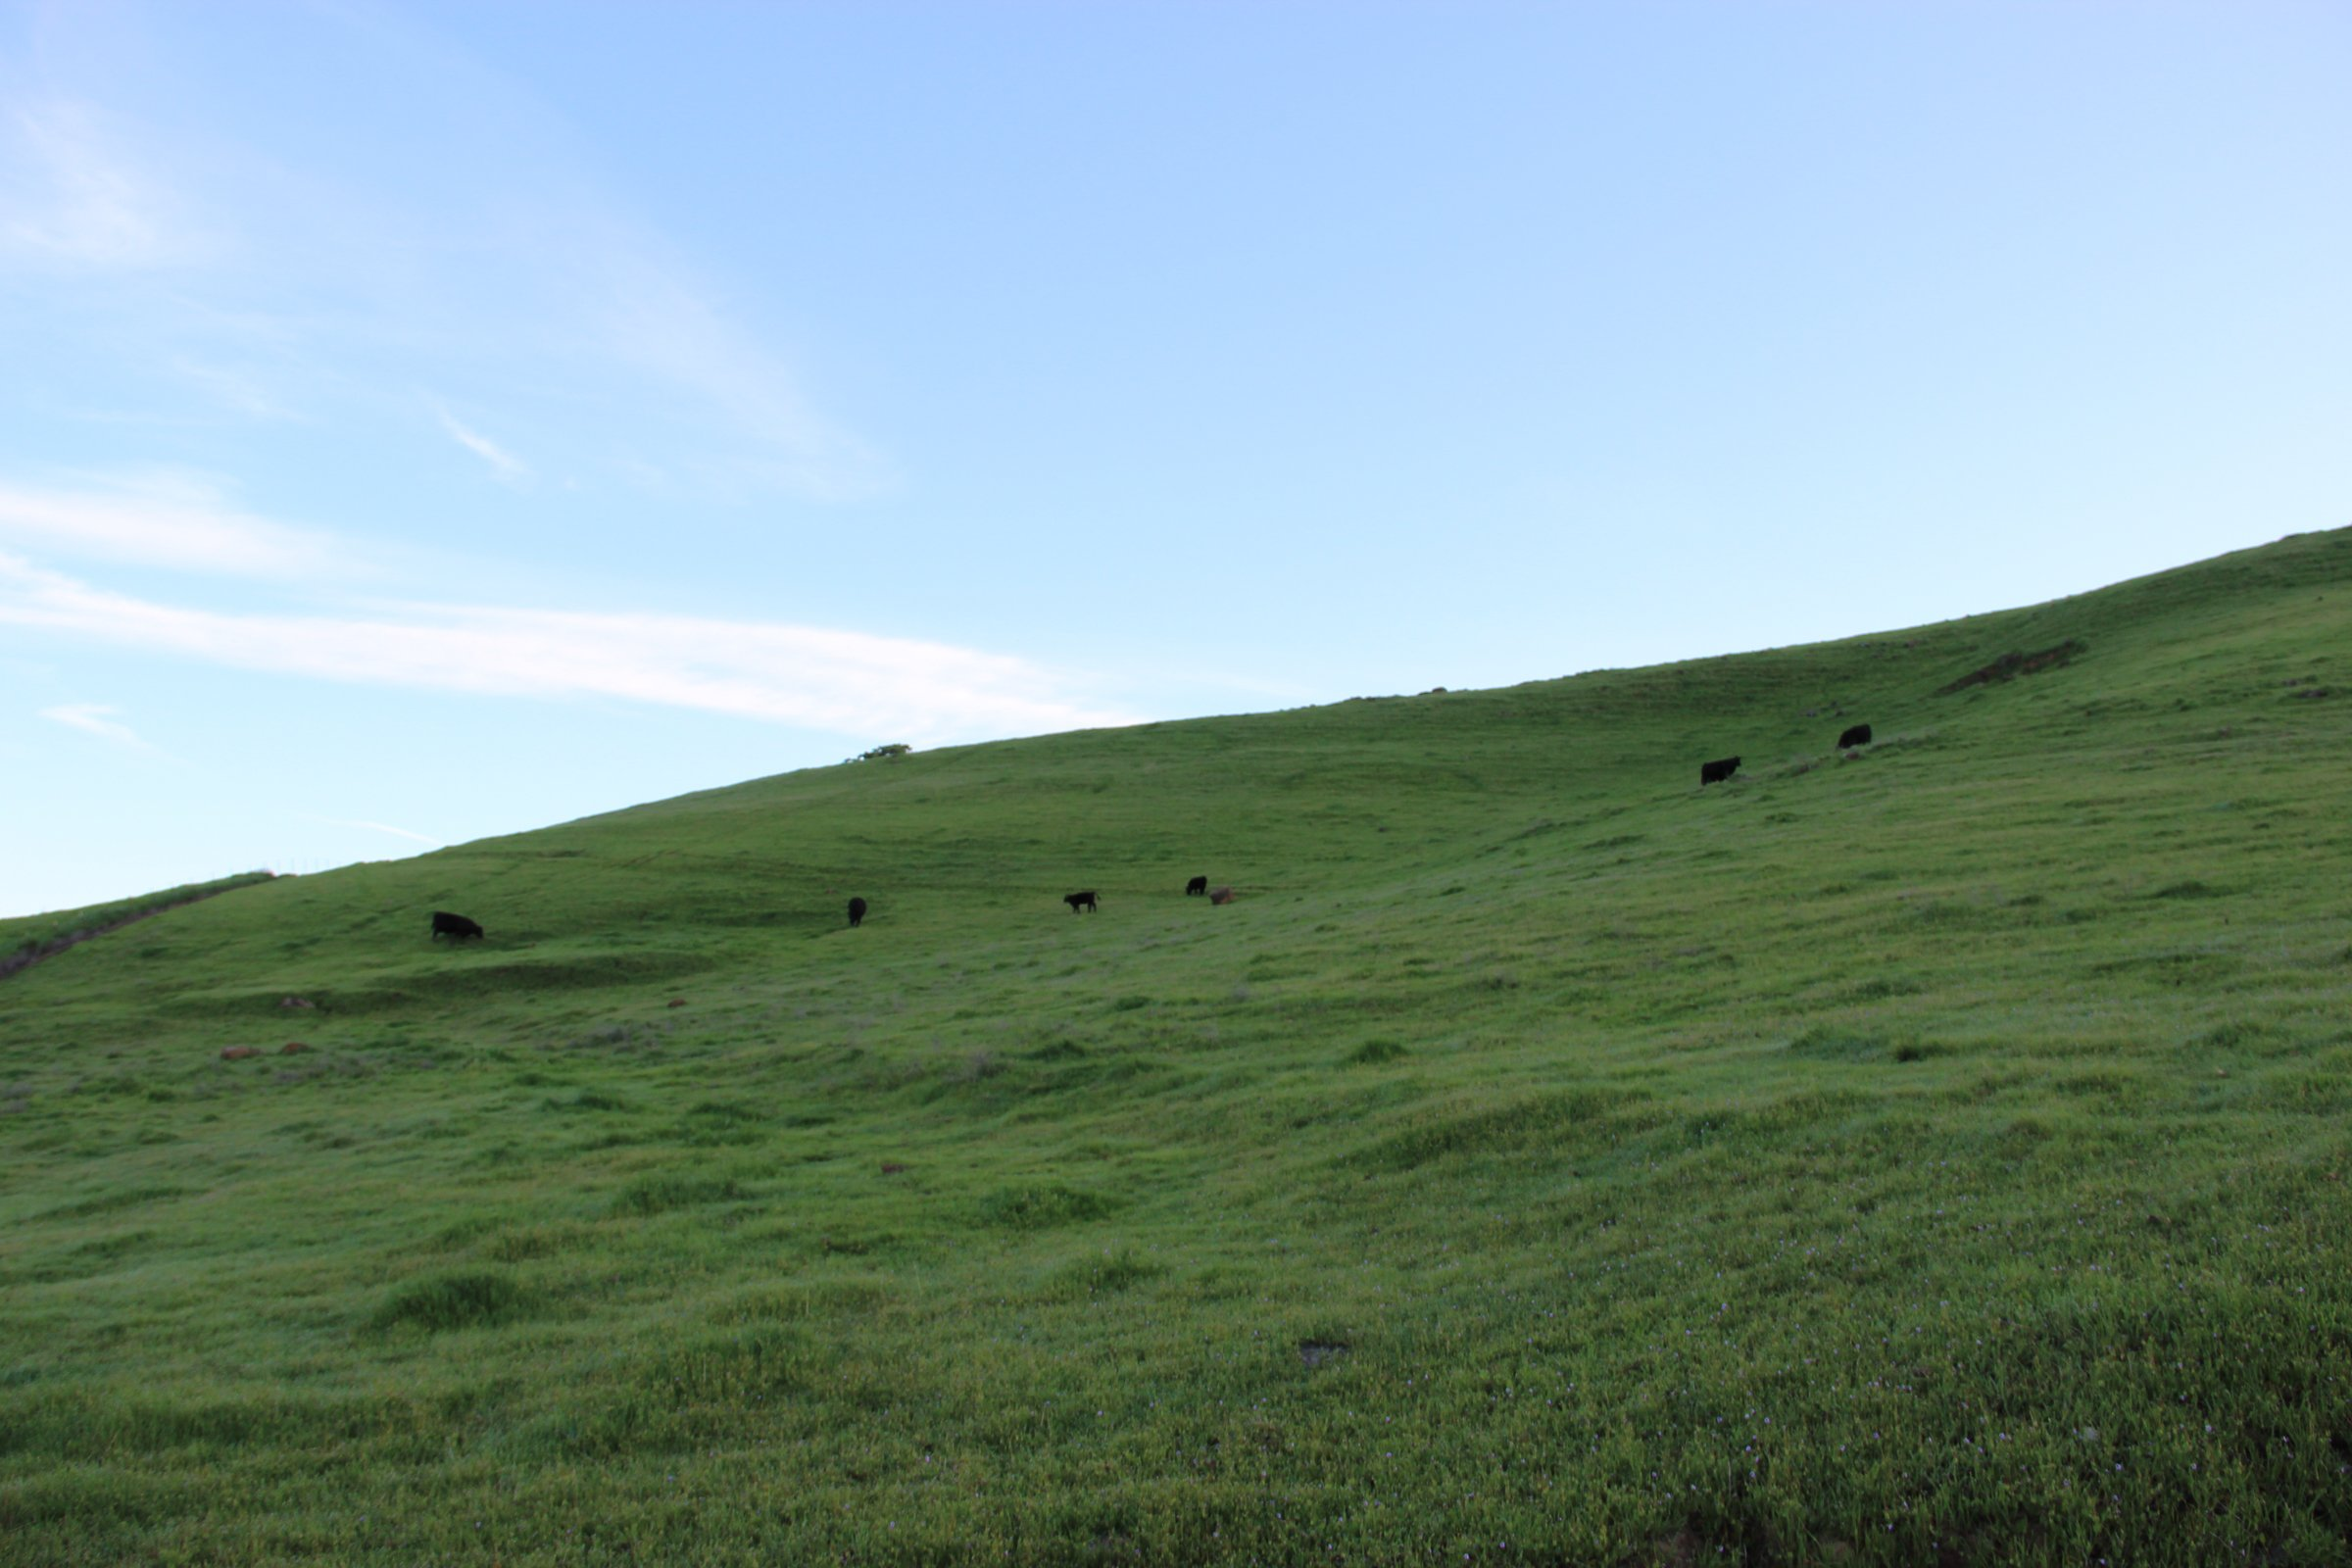 Green Hill with Cattle Under Blue Sky